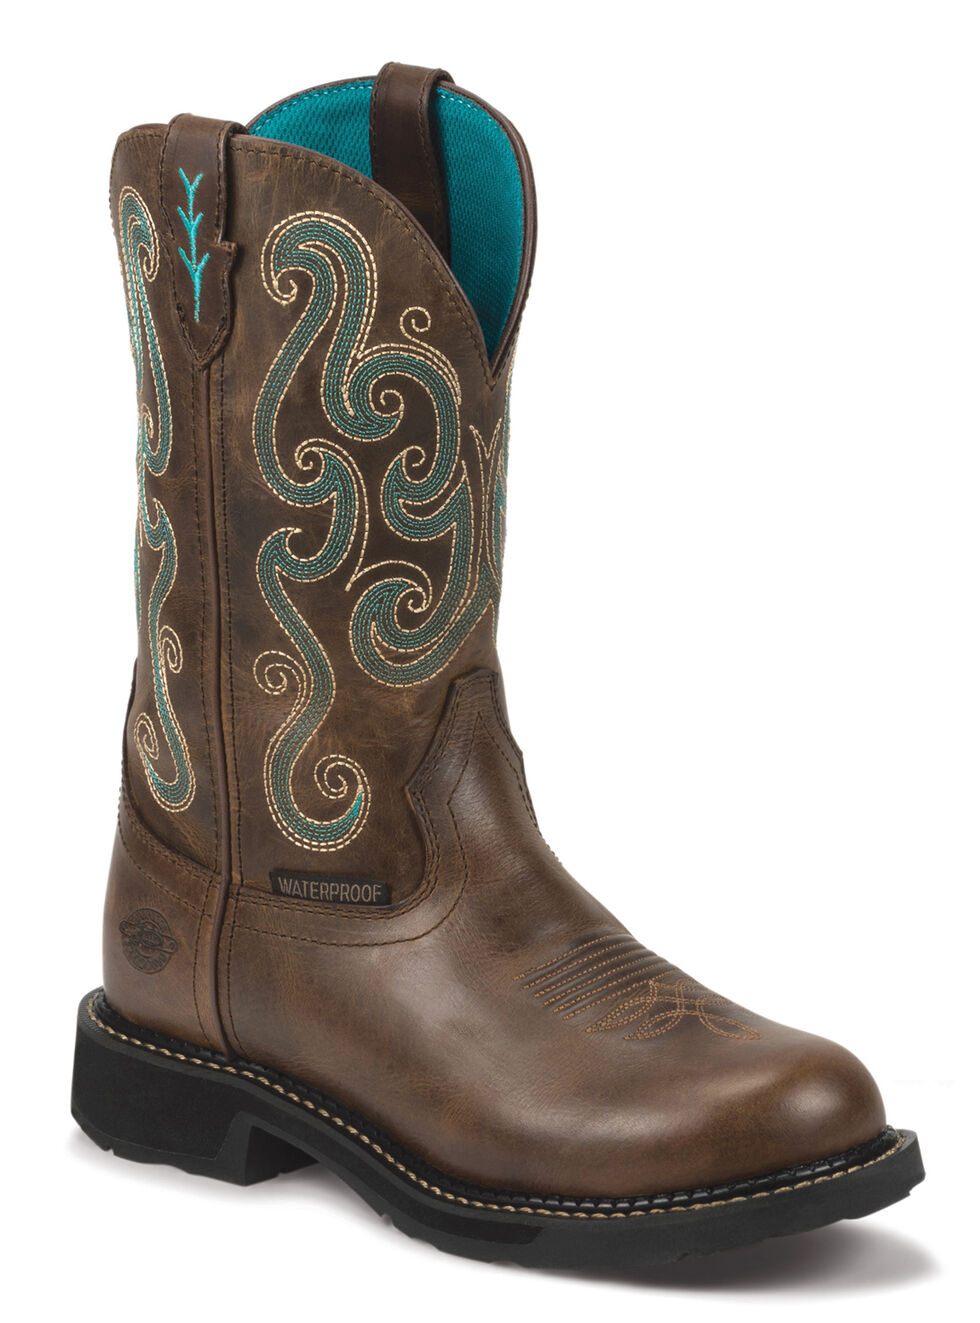 Justin Gypsy Women's Tasha EH Waterproof Work Boots - Soft Toe, Chocolate, hi-res